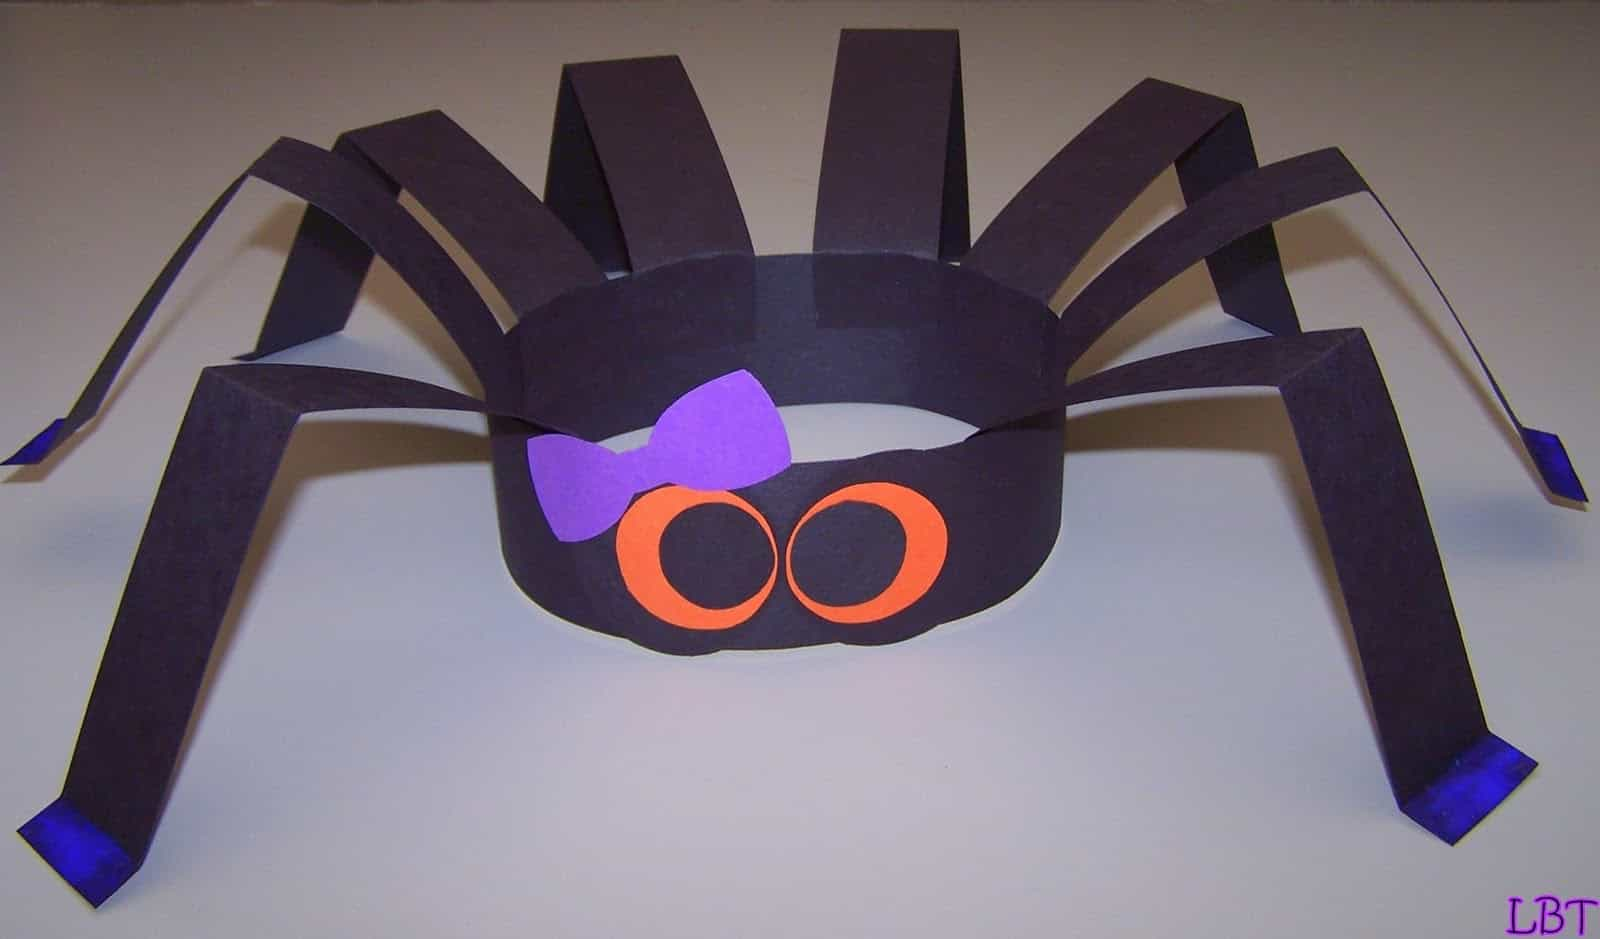 Construction paper spider hats